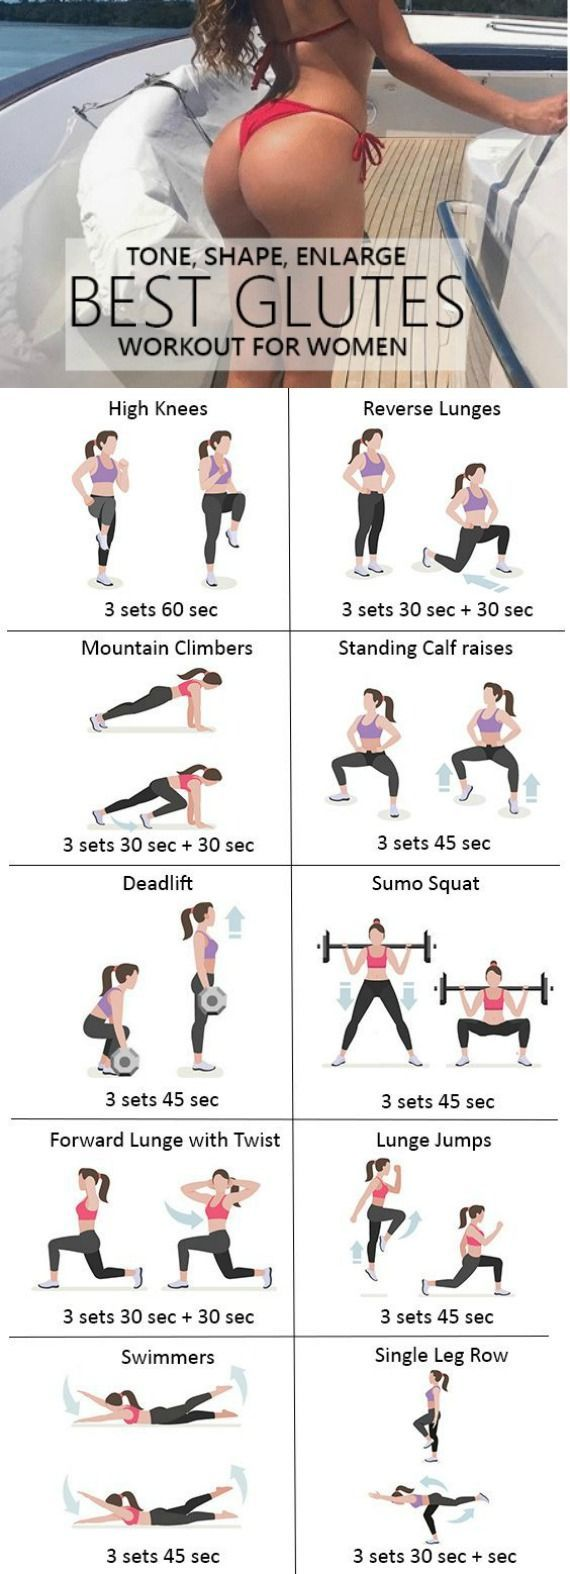 9 Effective Glute Workouts For Women To Tone Firm Lift-2550